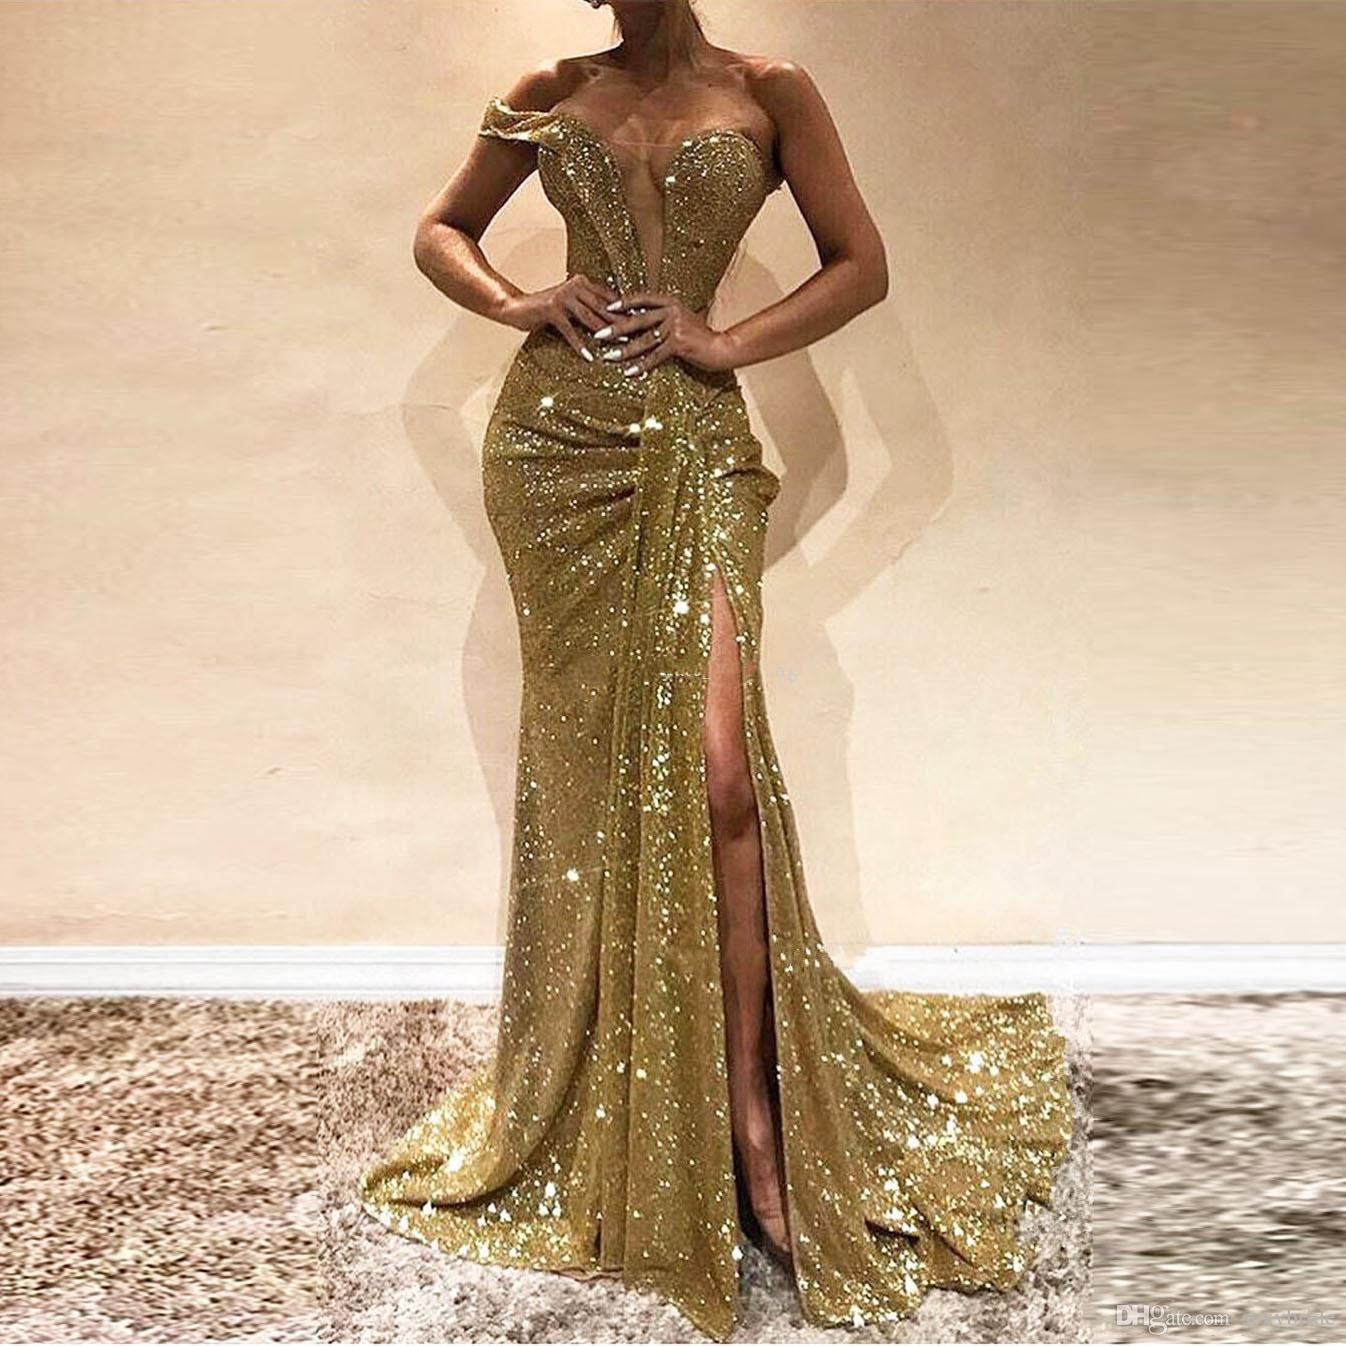 Sexy Gold Mermaid Evening Dresses Long High Side Split Sparkly Sequins Prom Party Gowns Deep V Neck One Off Shoulder Glitter Celebrity Dress